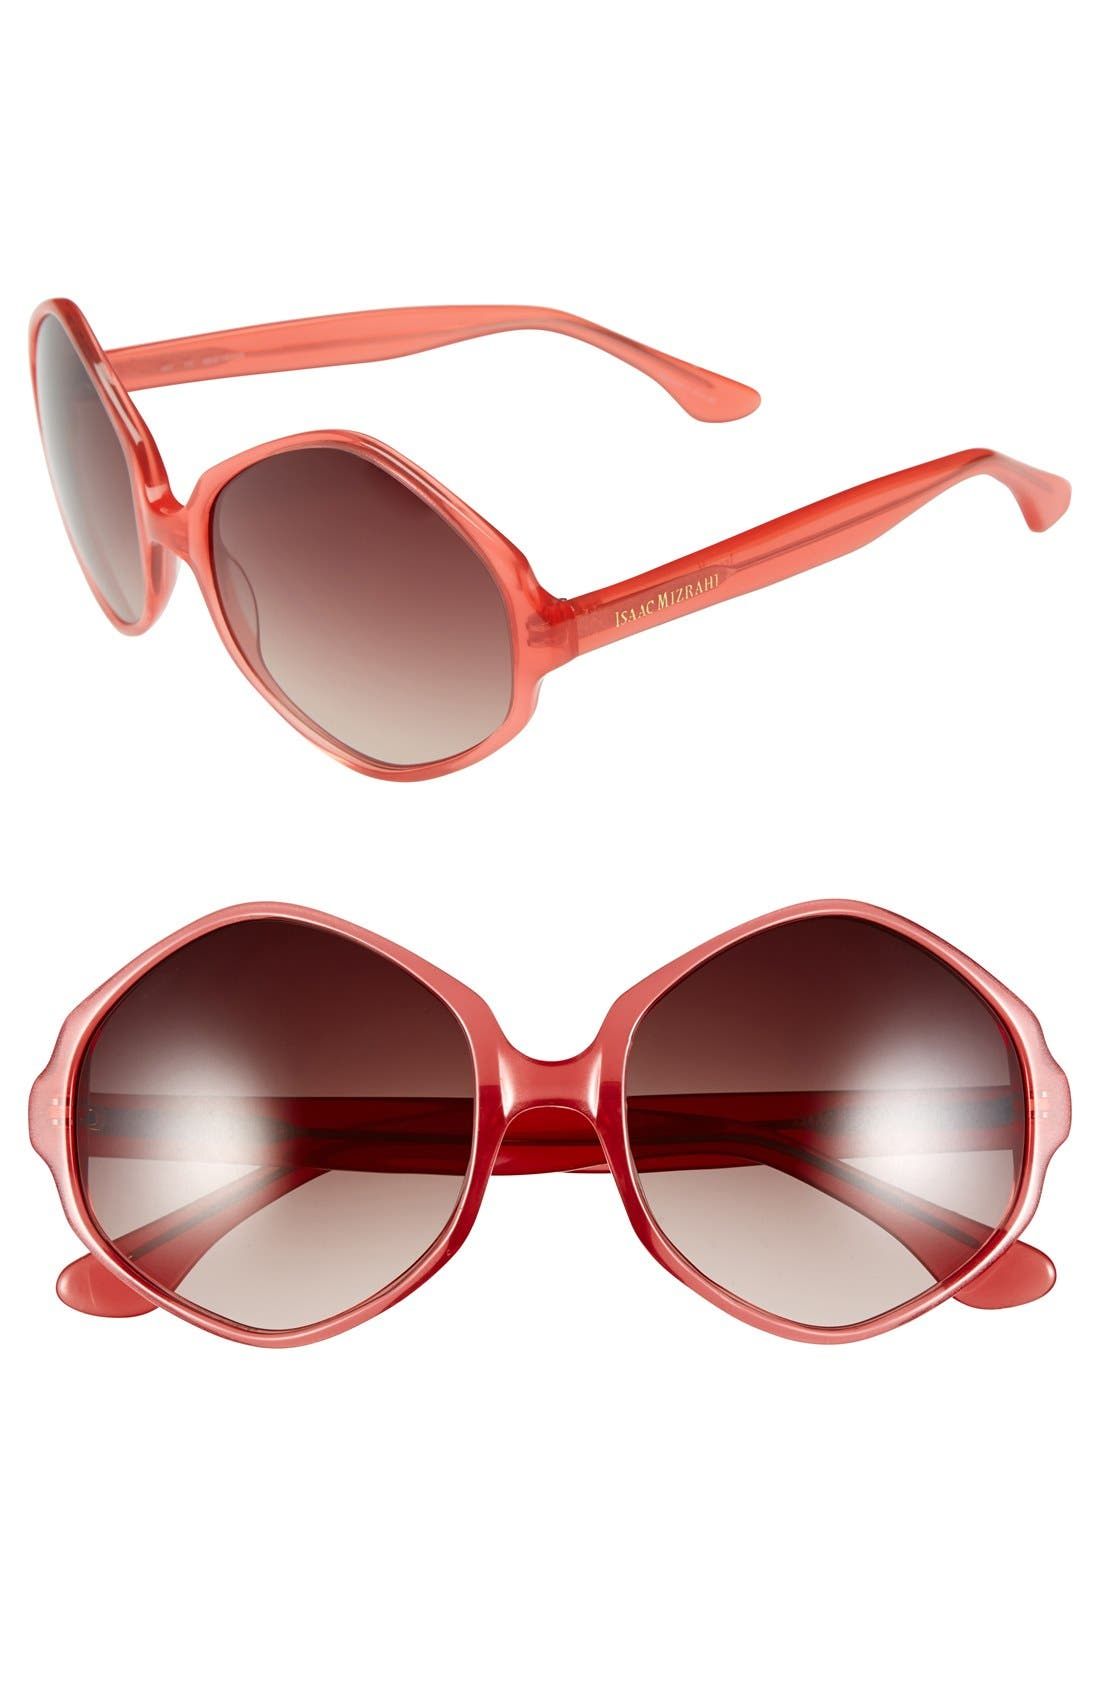 Main Image - Isaac Mizrahi New York 55mm Sunglasses